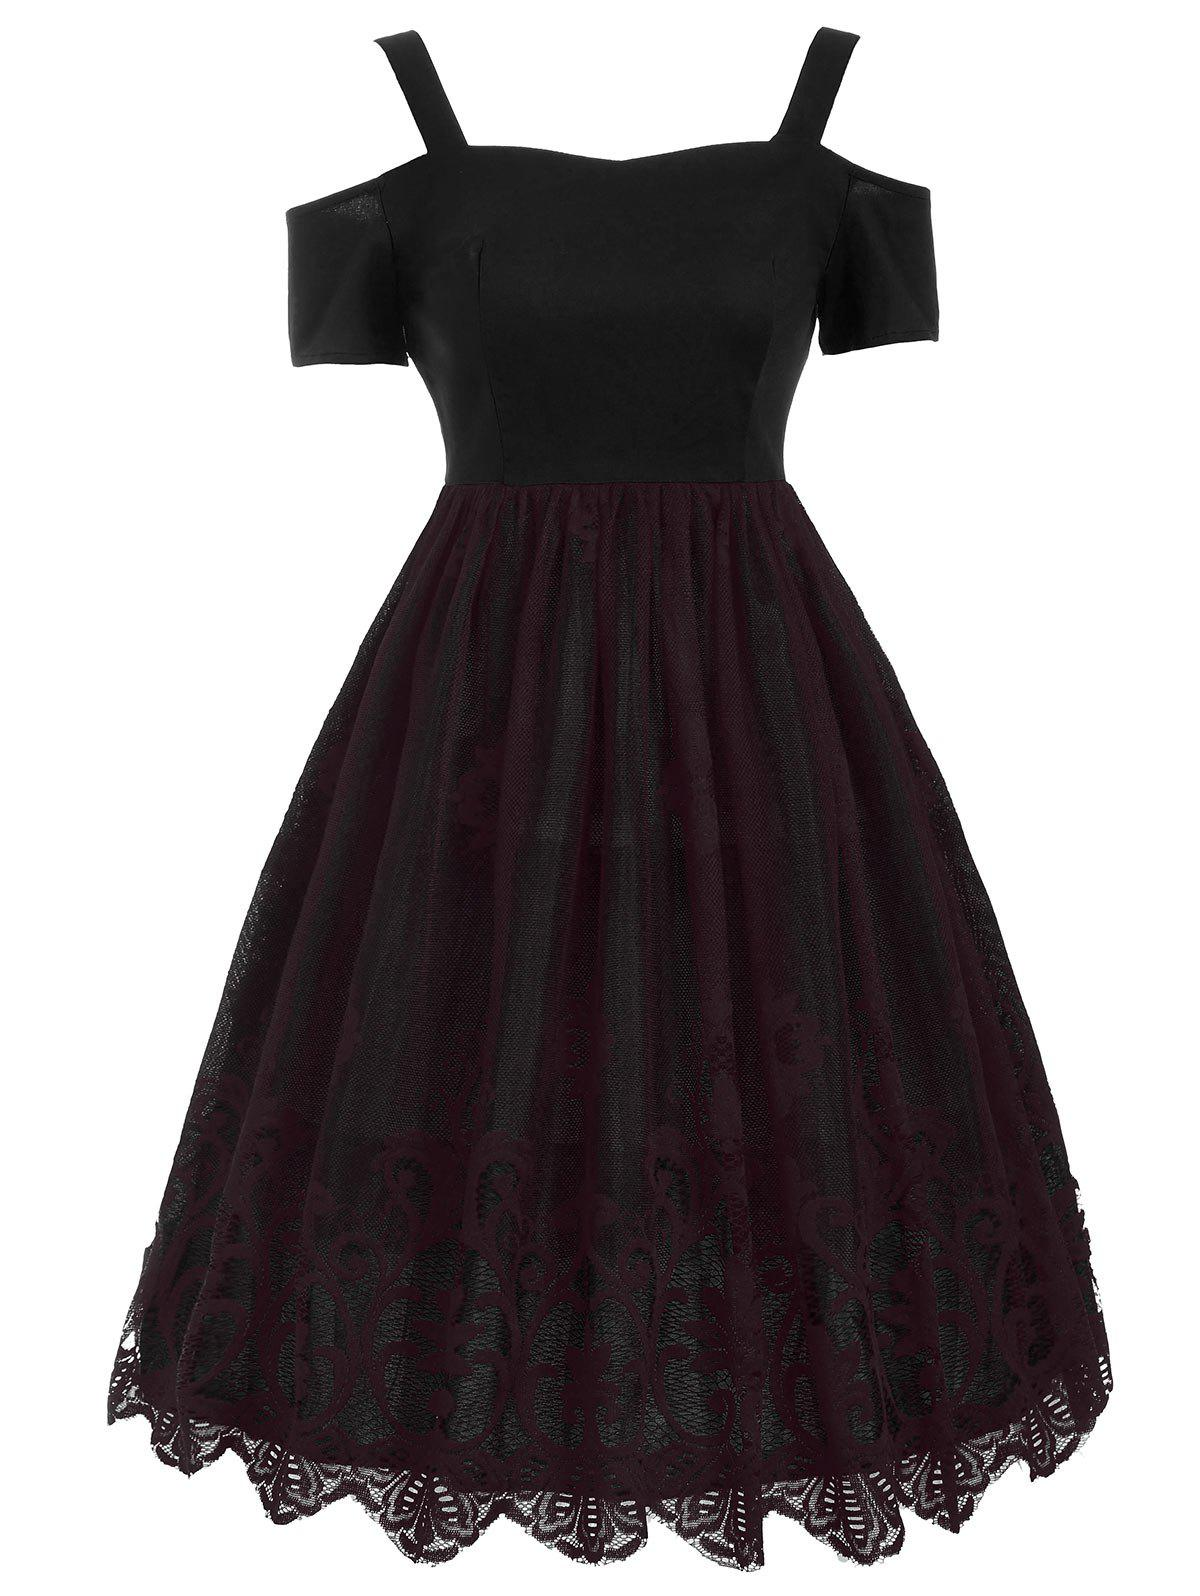 Vintage Lace Trim Fit and Flare Dress - DARK RED S